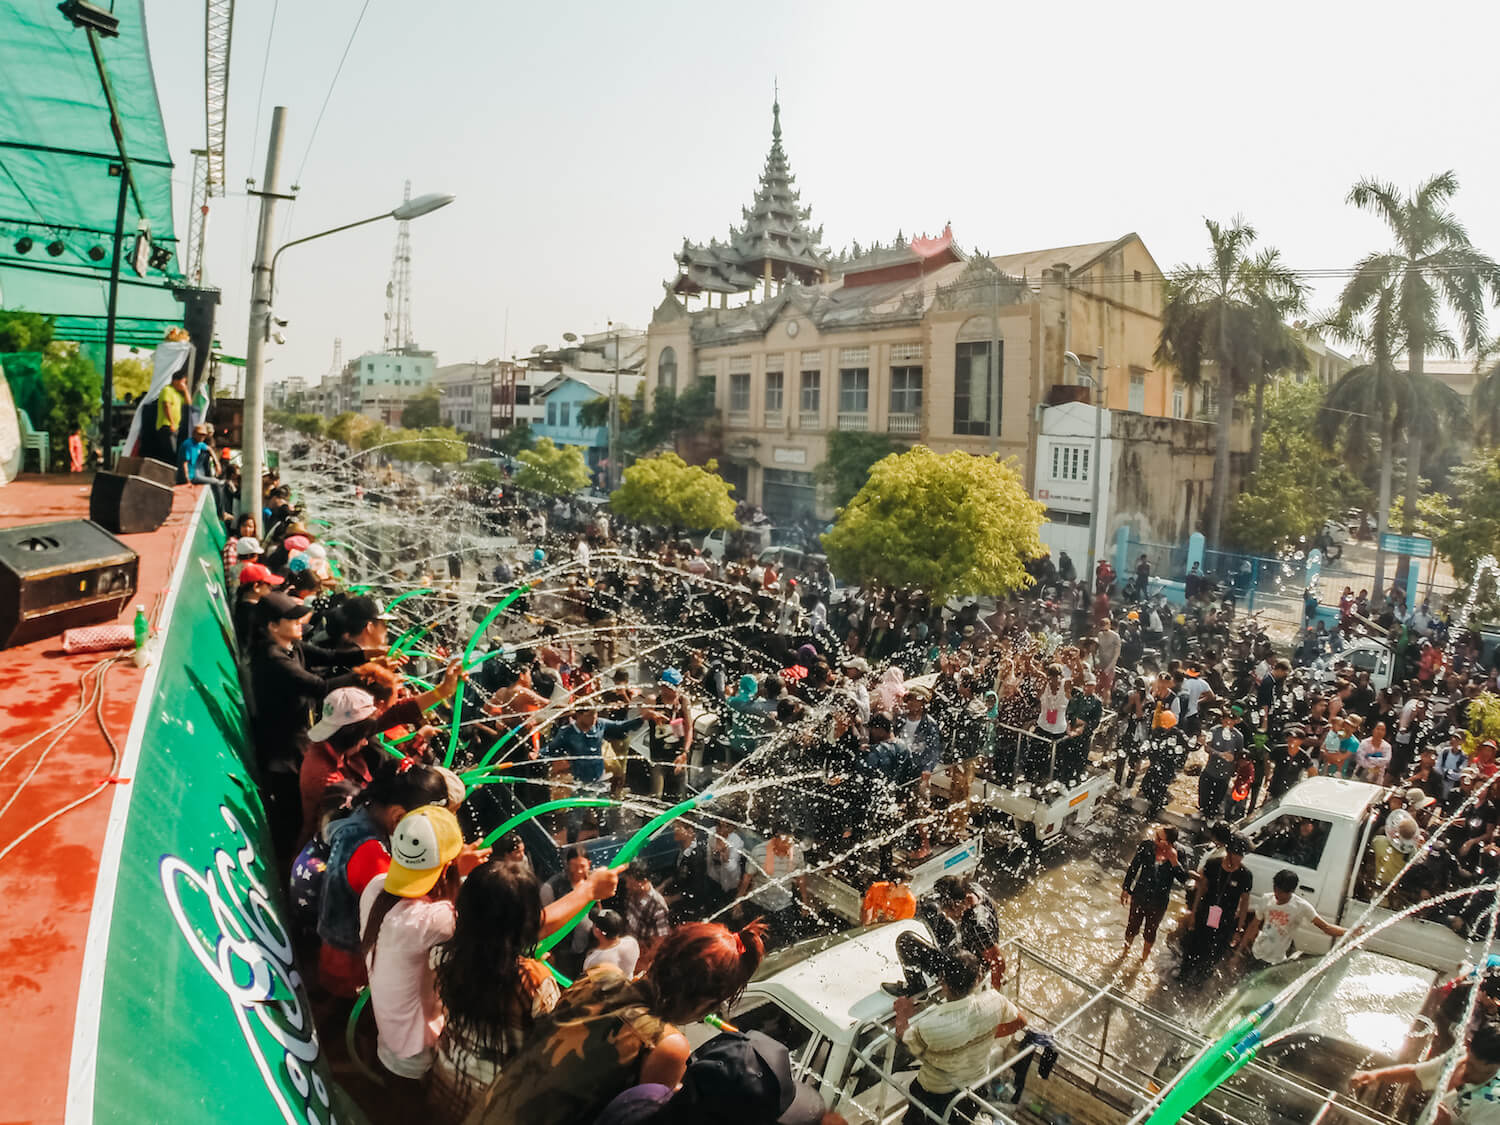 Thingyan Festival in Myanmar: The World's Most Epic Water Battle